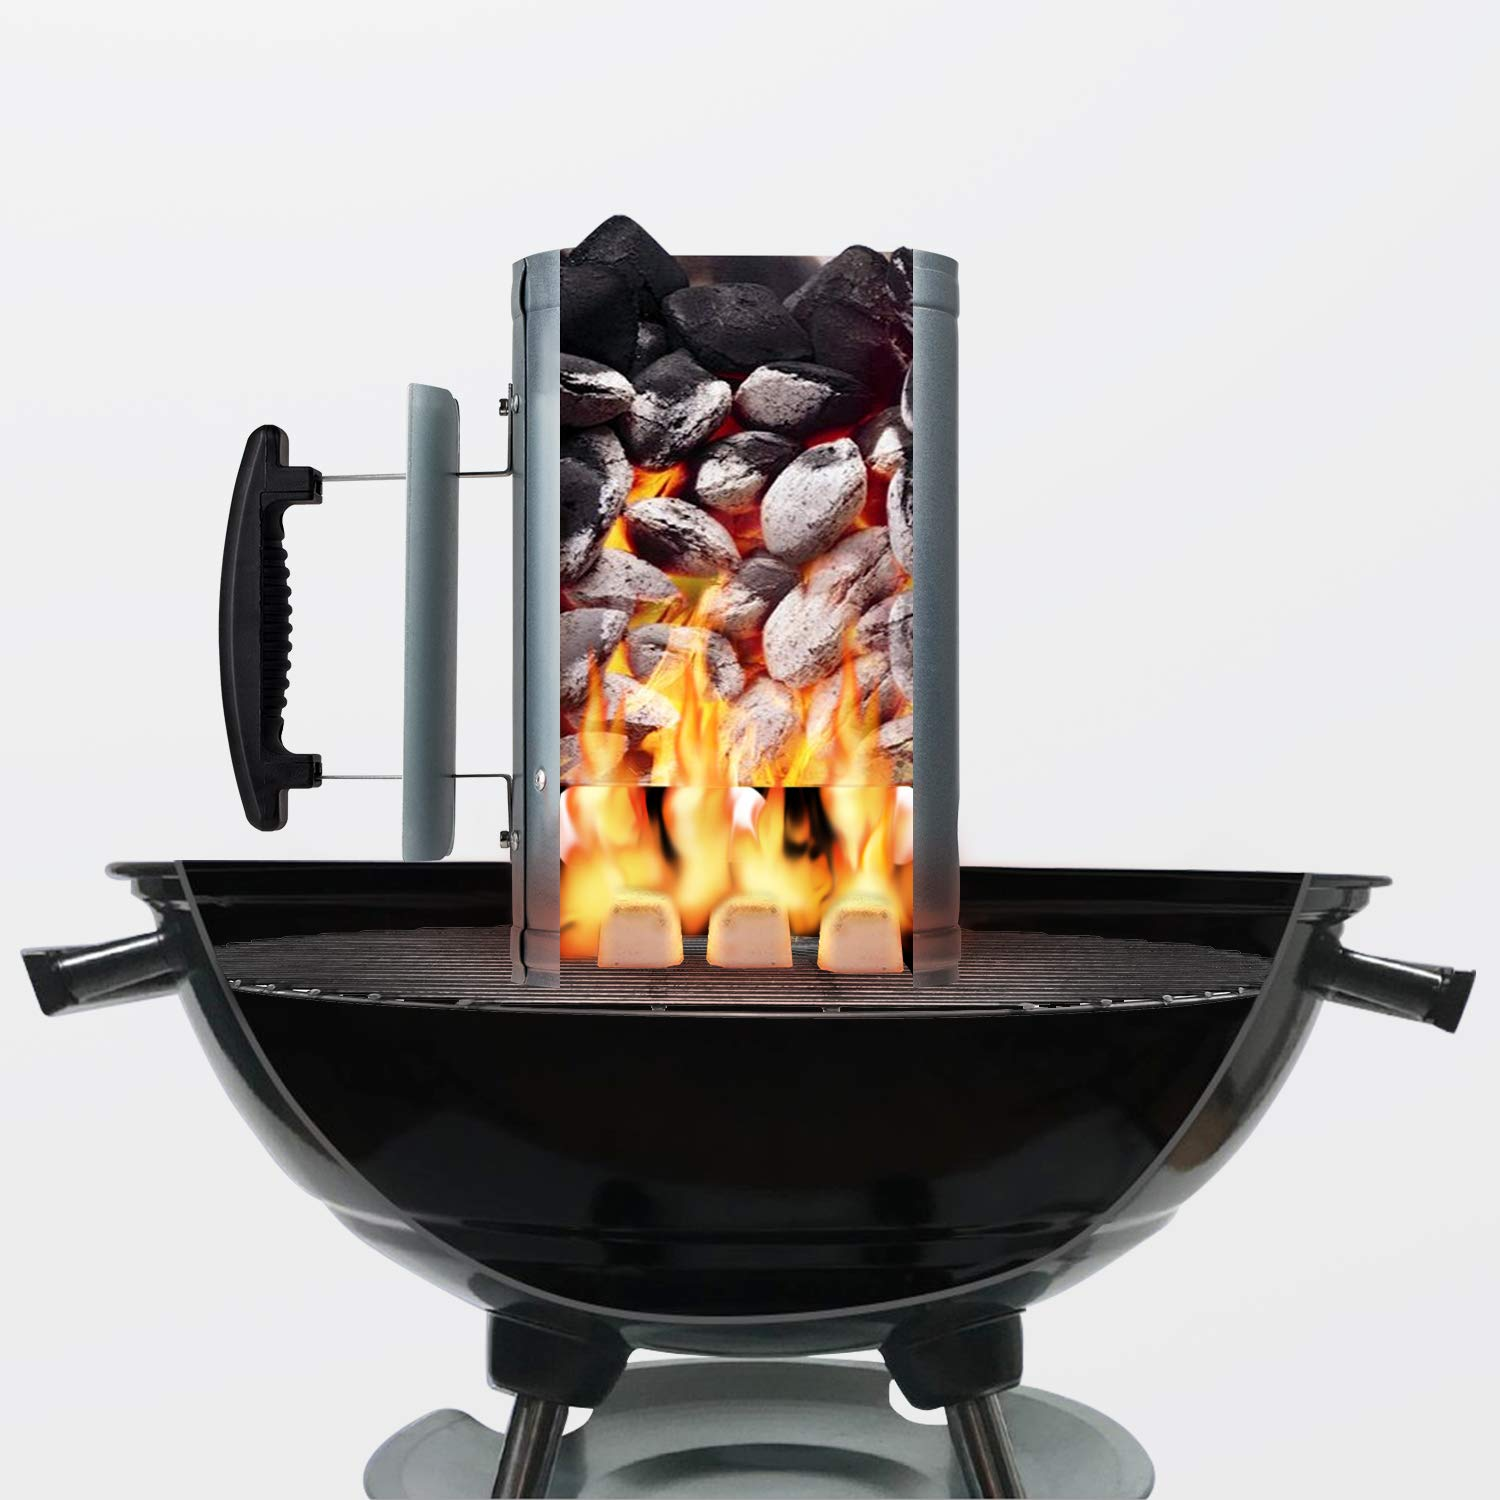 Sougem Charcoal Chimney Starter 11 Quot X 7 Quot To Light All